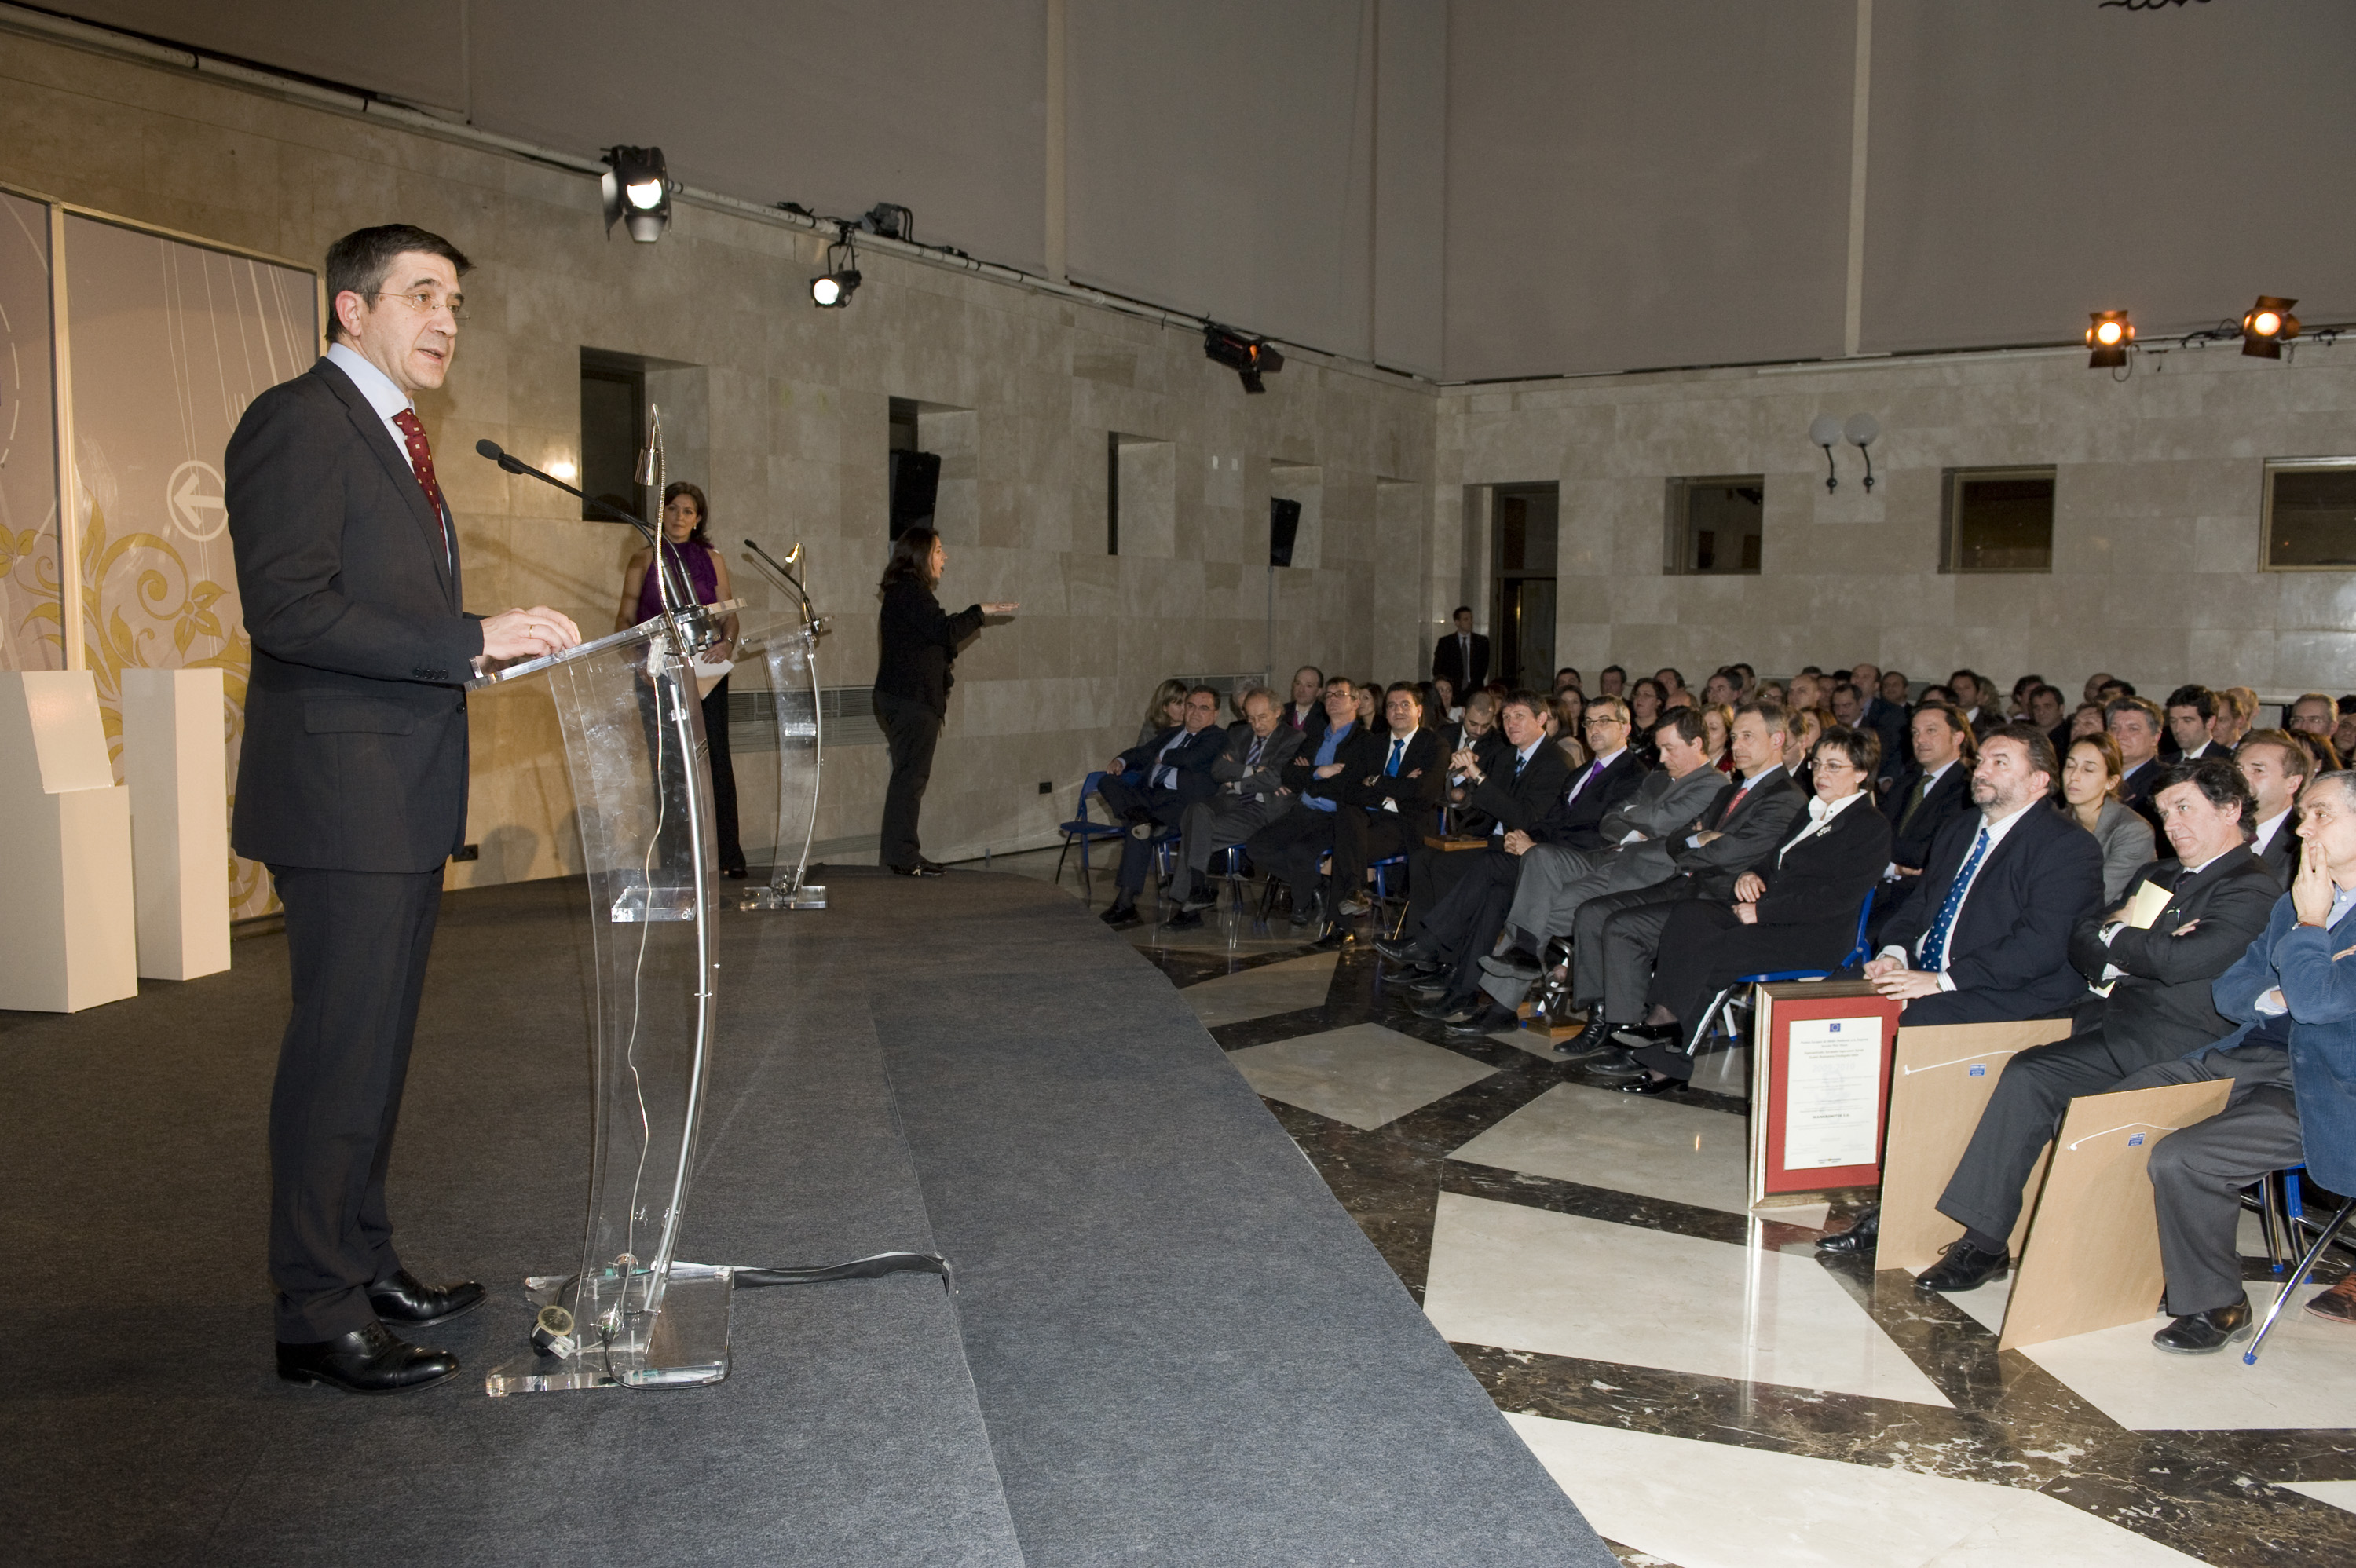 premios04.jpg